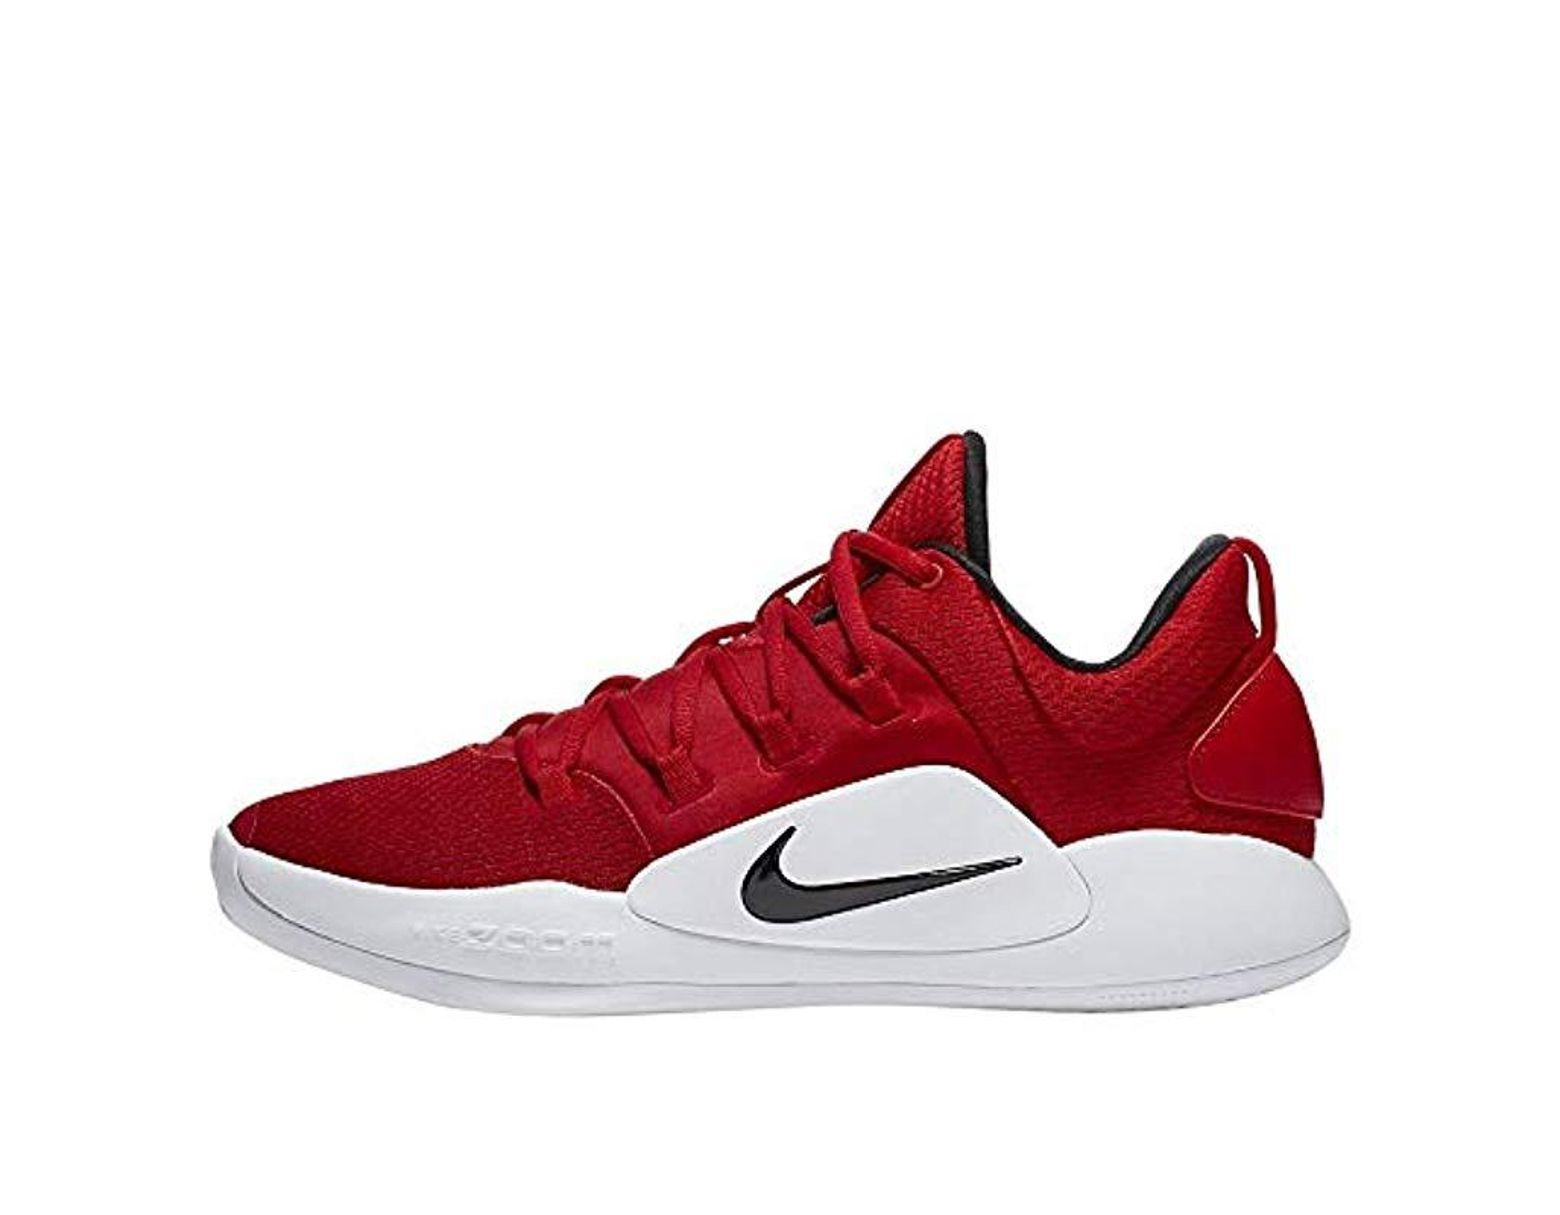 e43e71682e3c4 Nike Hyperdunk X Low Tb Fitness Shoes in Red for Men - Save 28% - Lyst